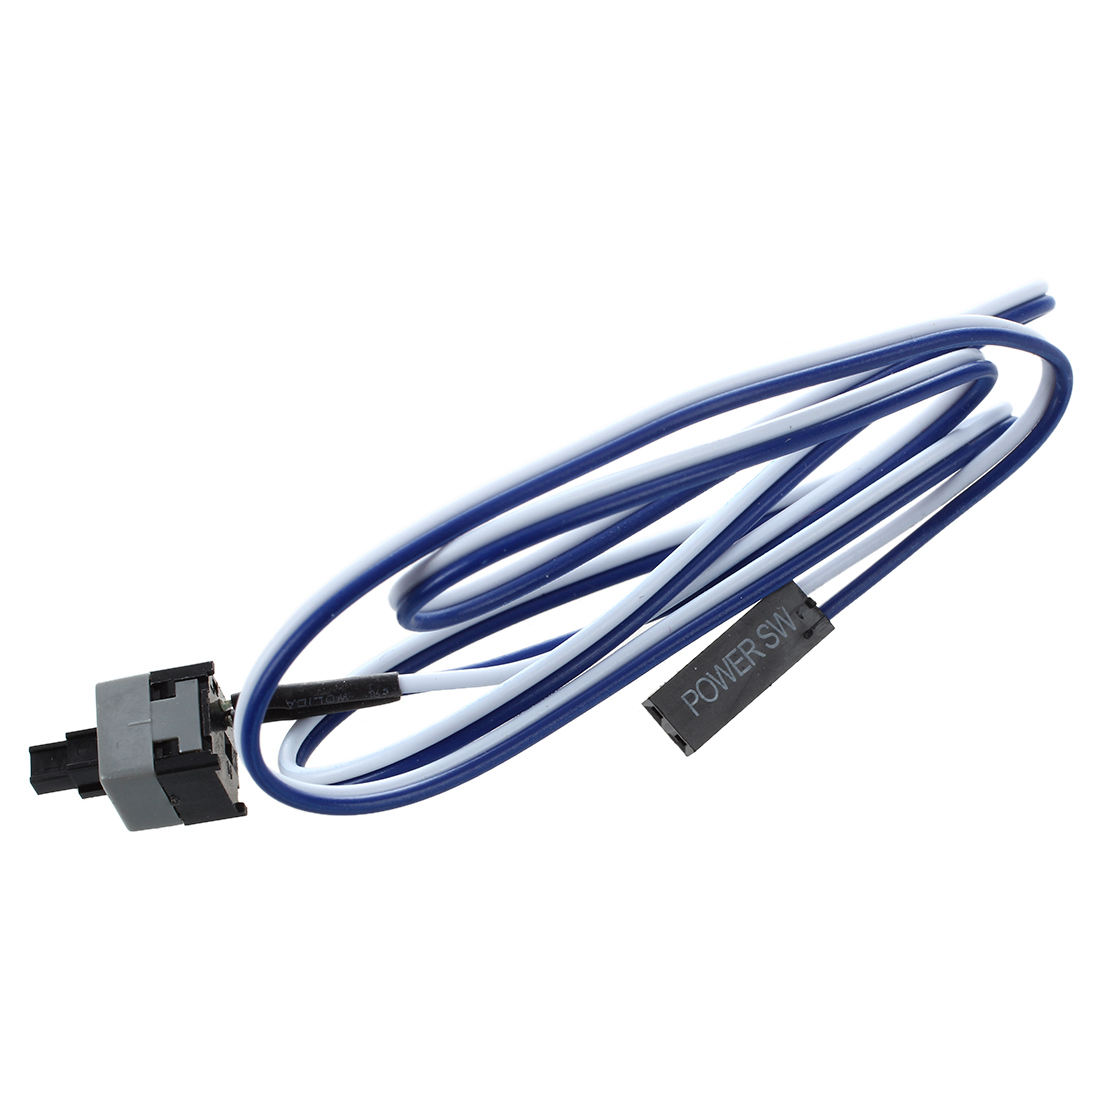 100 psc/lot 20.5 Long Power Button Switch Cable for PC Switches Reset Computer promotion 2 pcs 20 5 long power button switch cable for pc reset computer